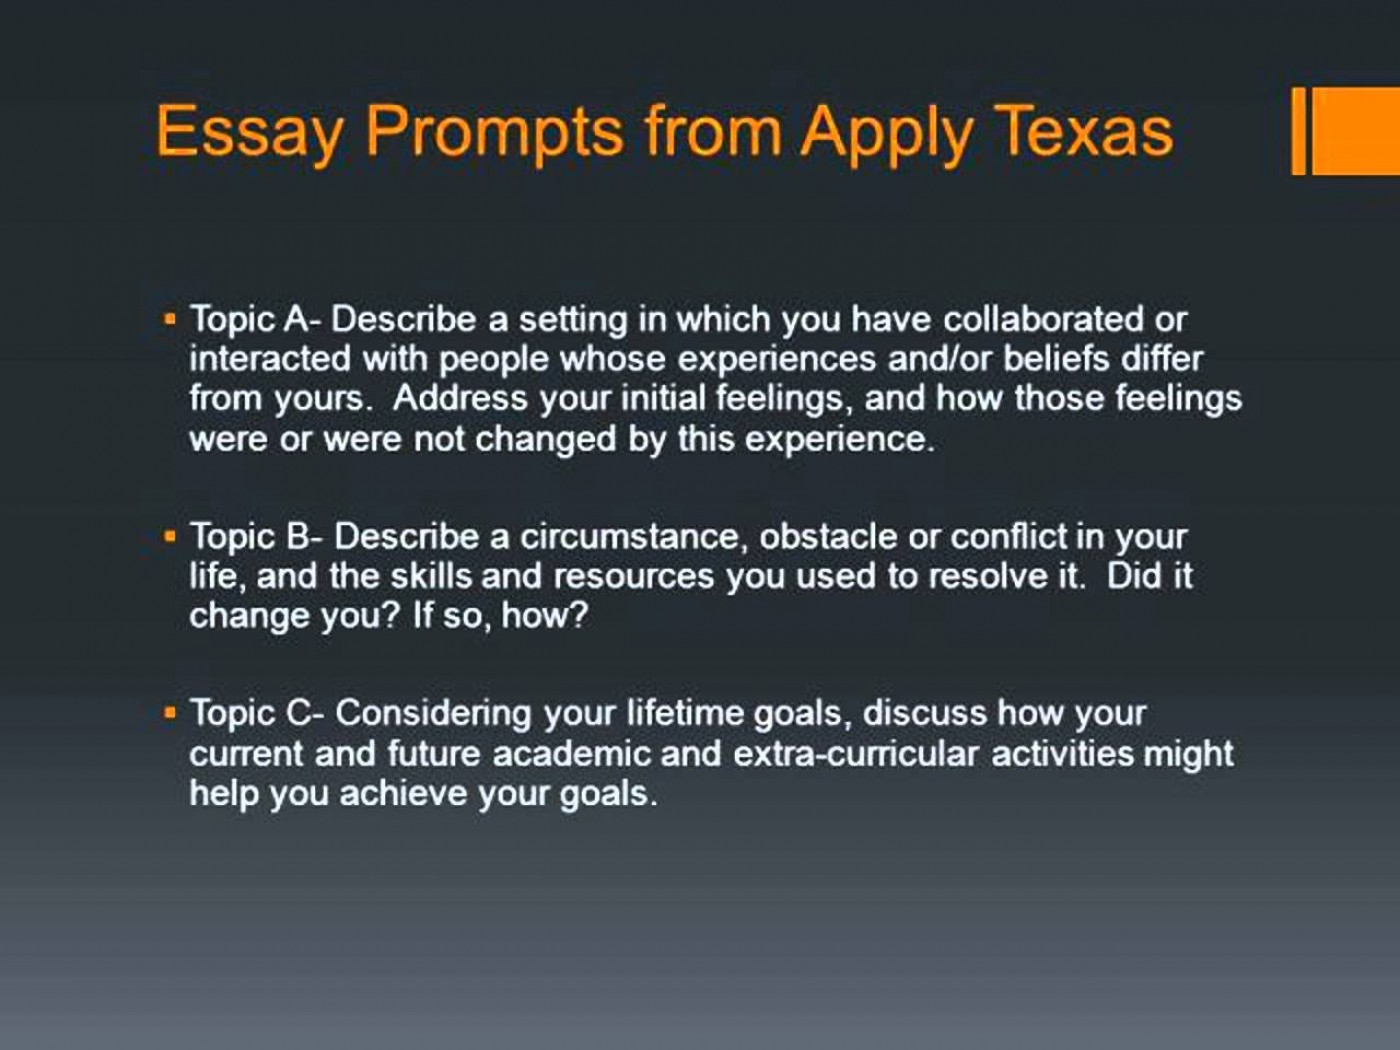 002 Apply Texas Essay Prompts Youtube Topic Examples Maxresde Example Wonderful Applytexas 2018-19 Prompt C Ut Austin 1400